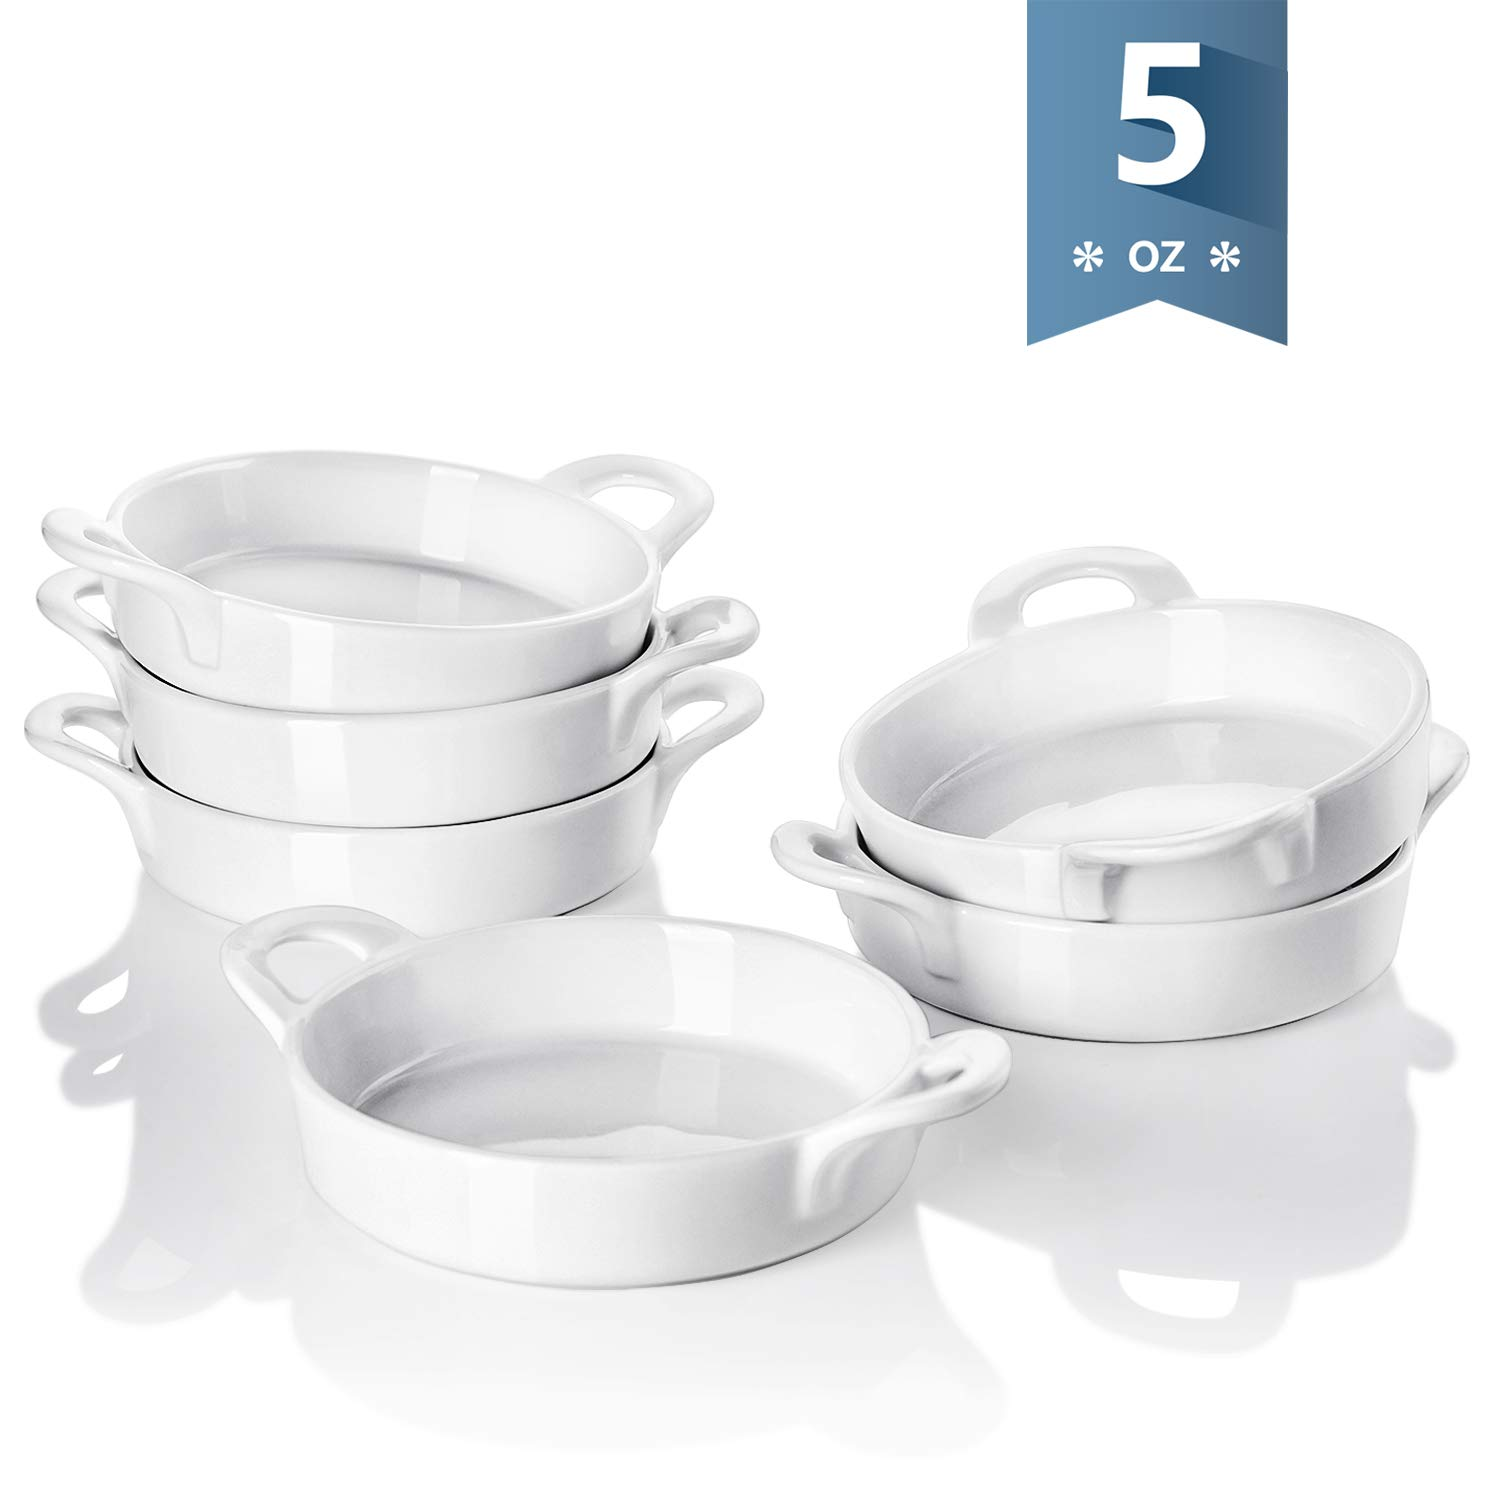 Sweese 507.001 Porcelain Ramekins, 5 Ounce Ramekins for Baking, Round Creme Brulee Dish with Double Handle-Set of 6, White by Sweese